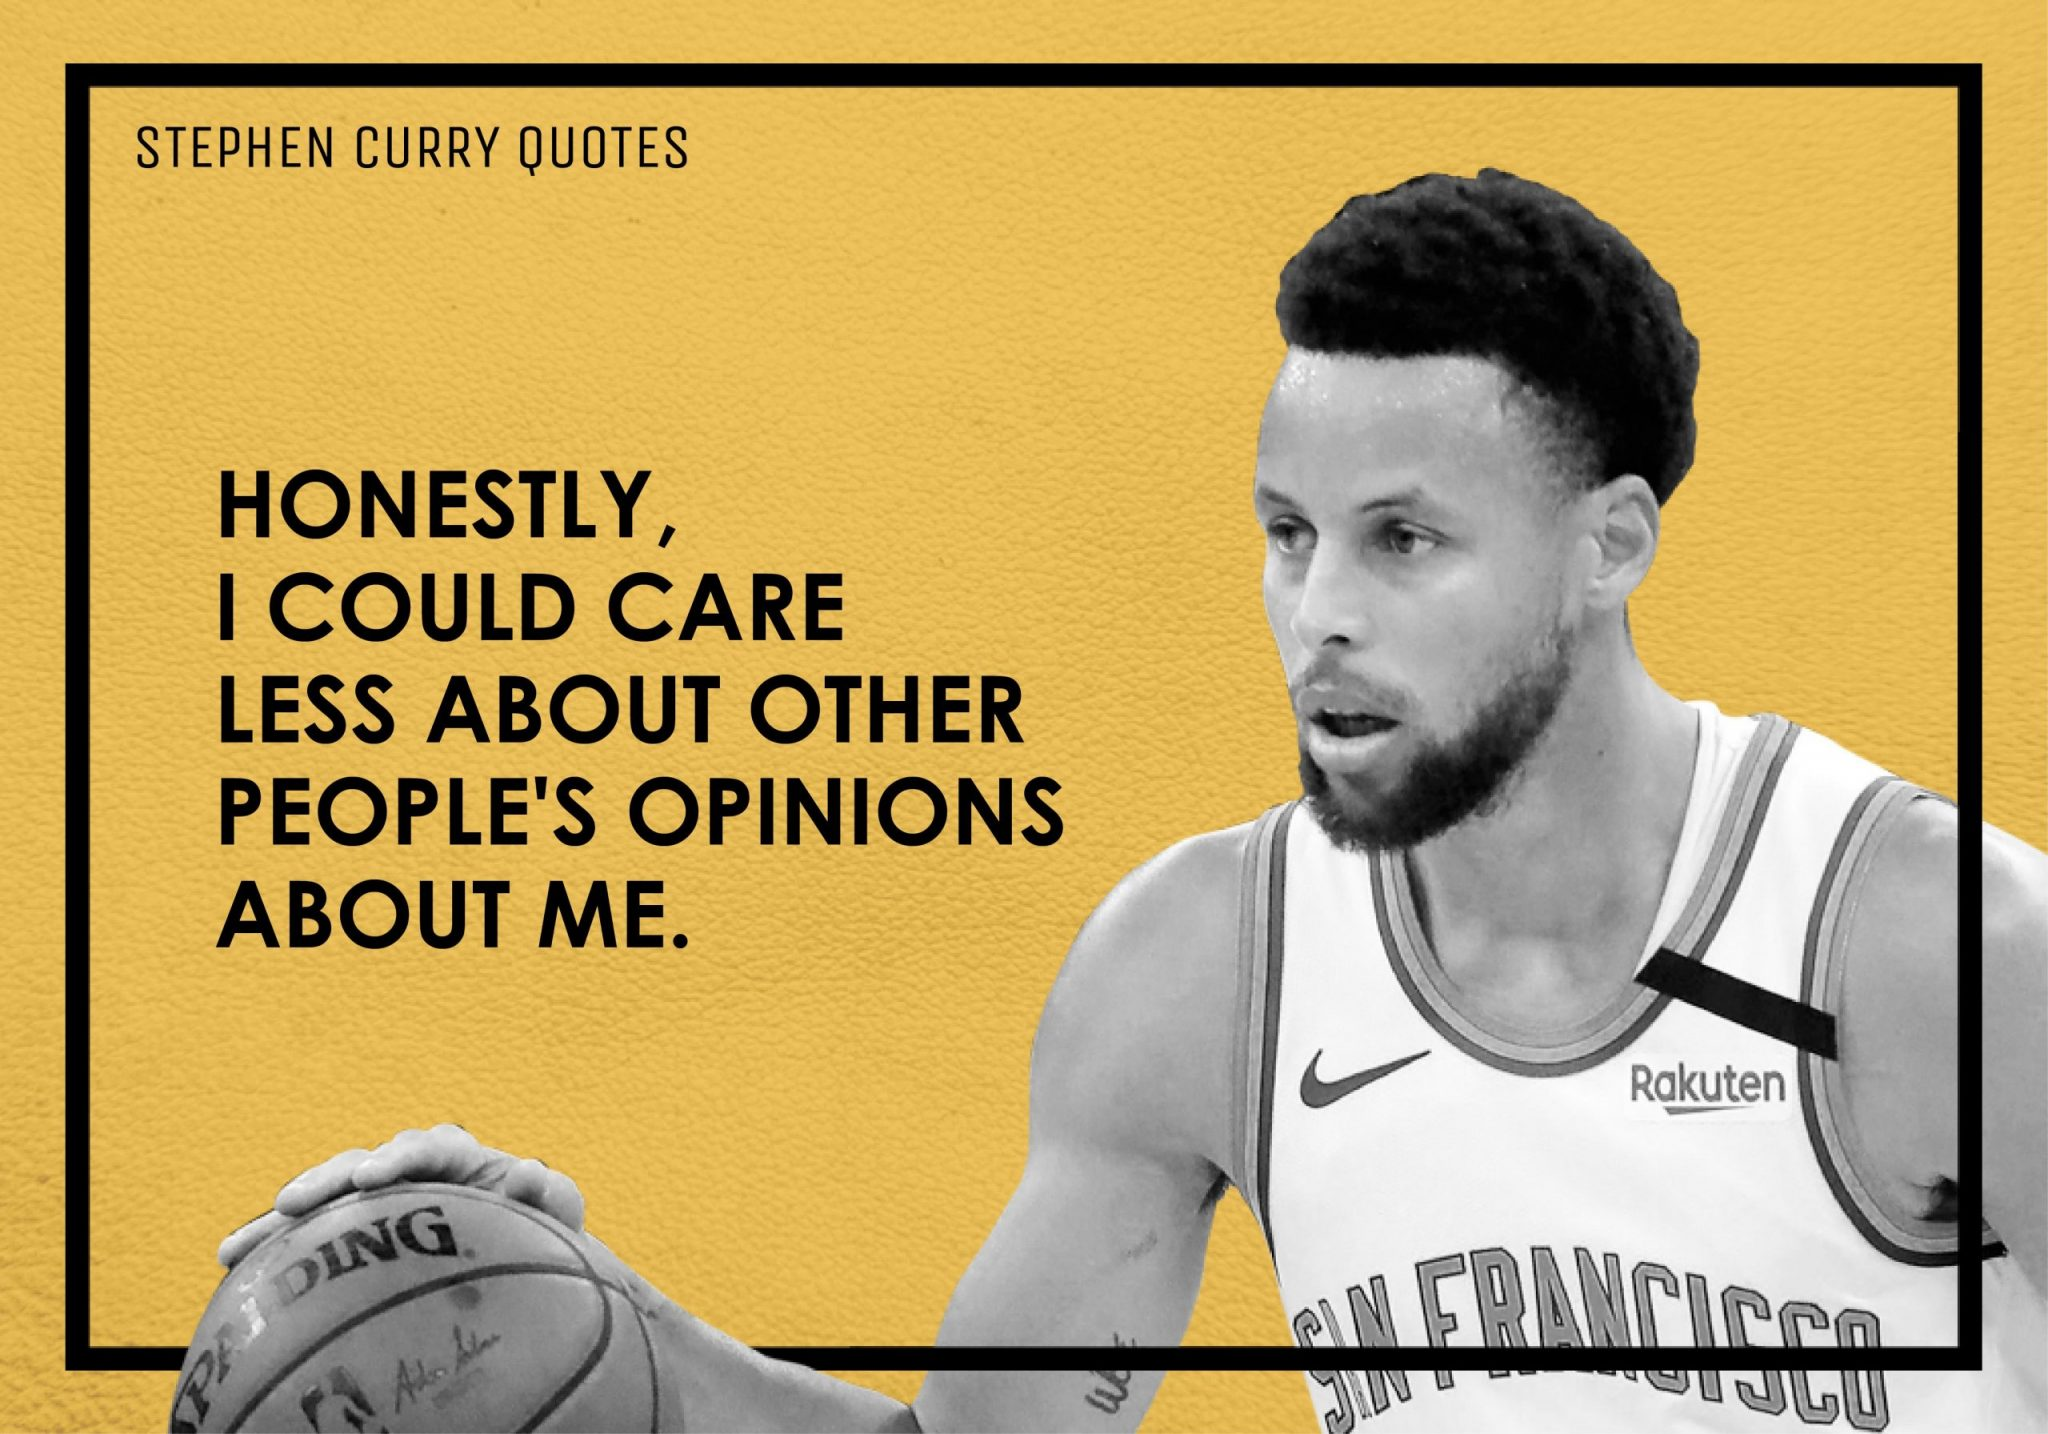 Stephen Curry Quotes (5)